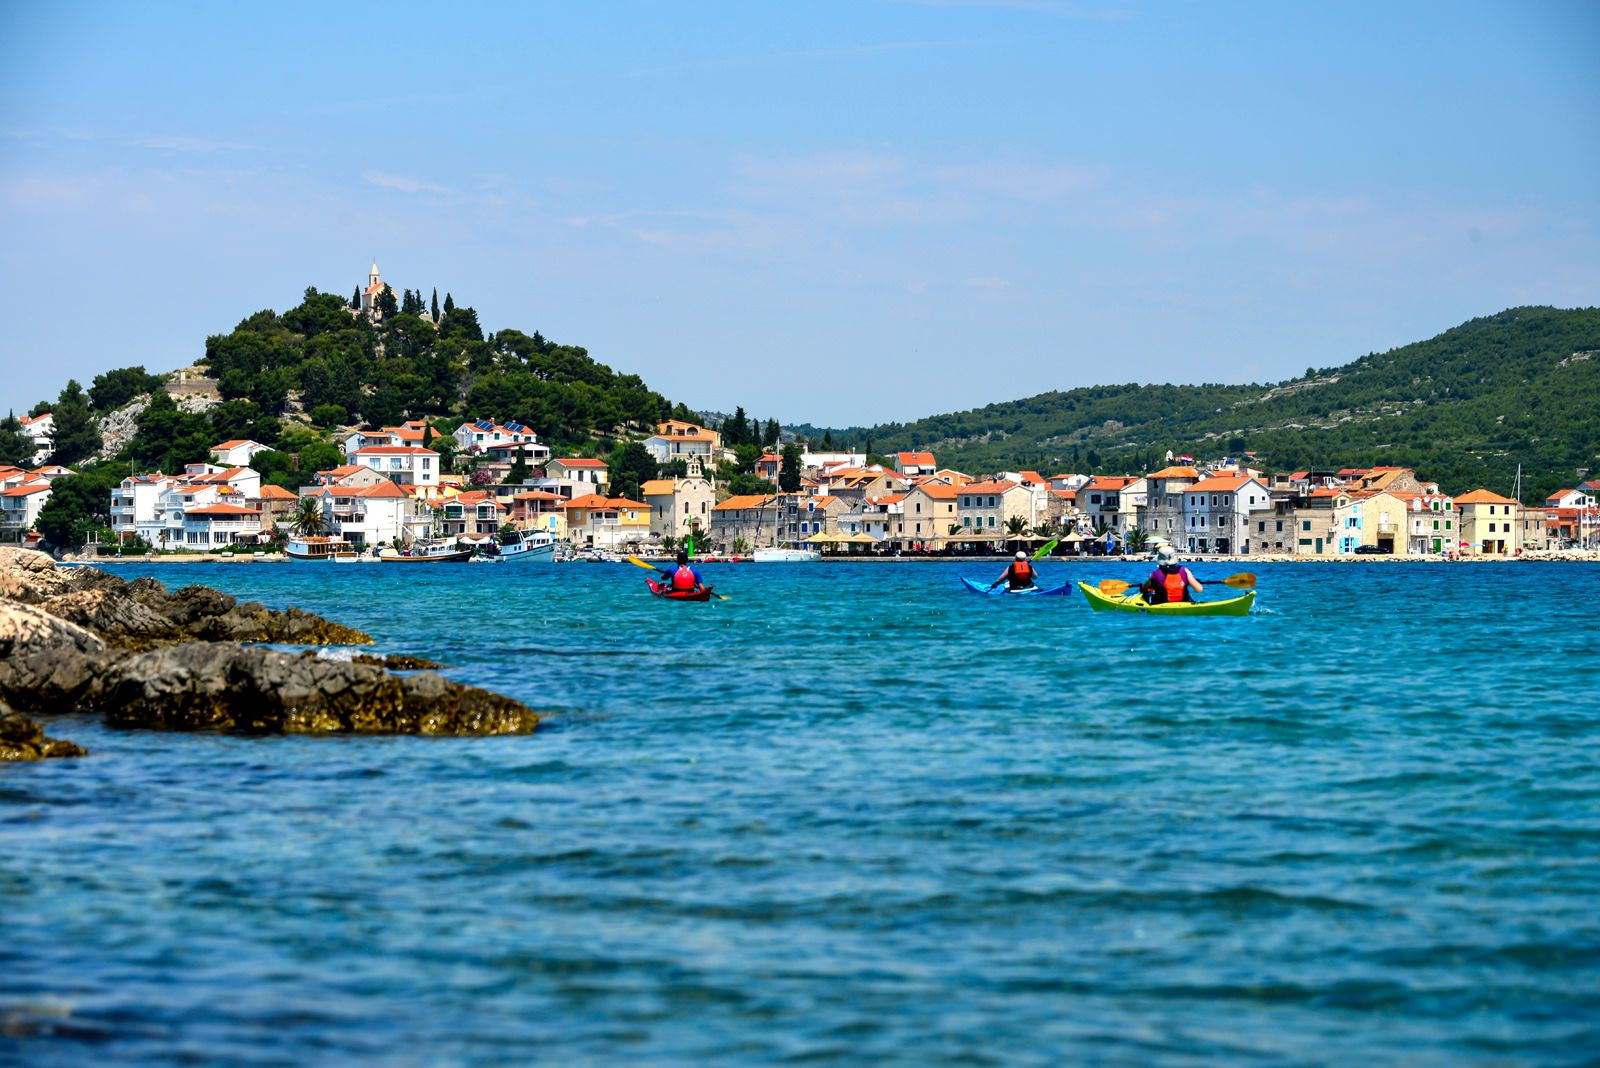 Croatia Kayaking Tours Of Remote Dalmatian Coast Islands Including The Kornati Archipelago Kayak Trips From Boutique